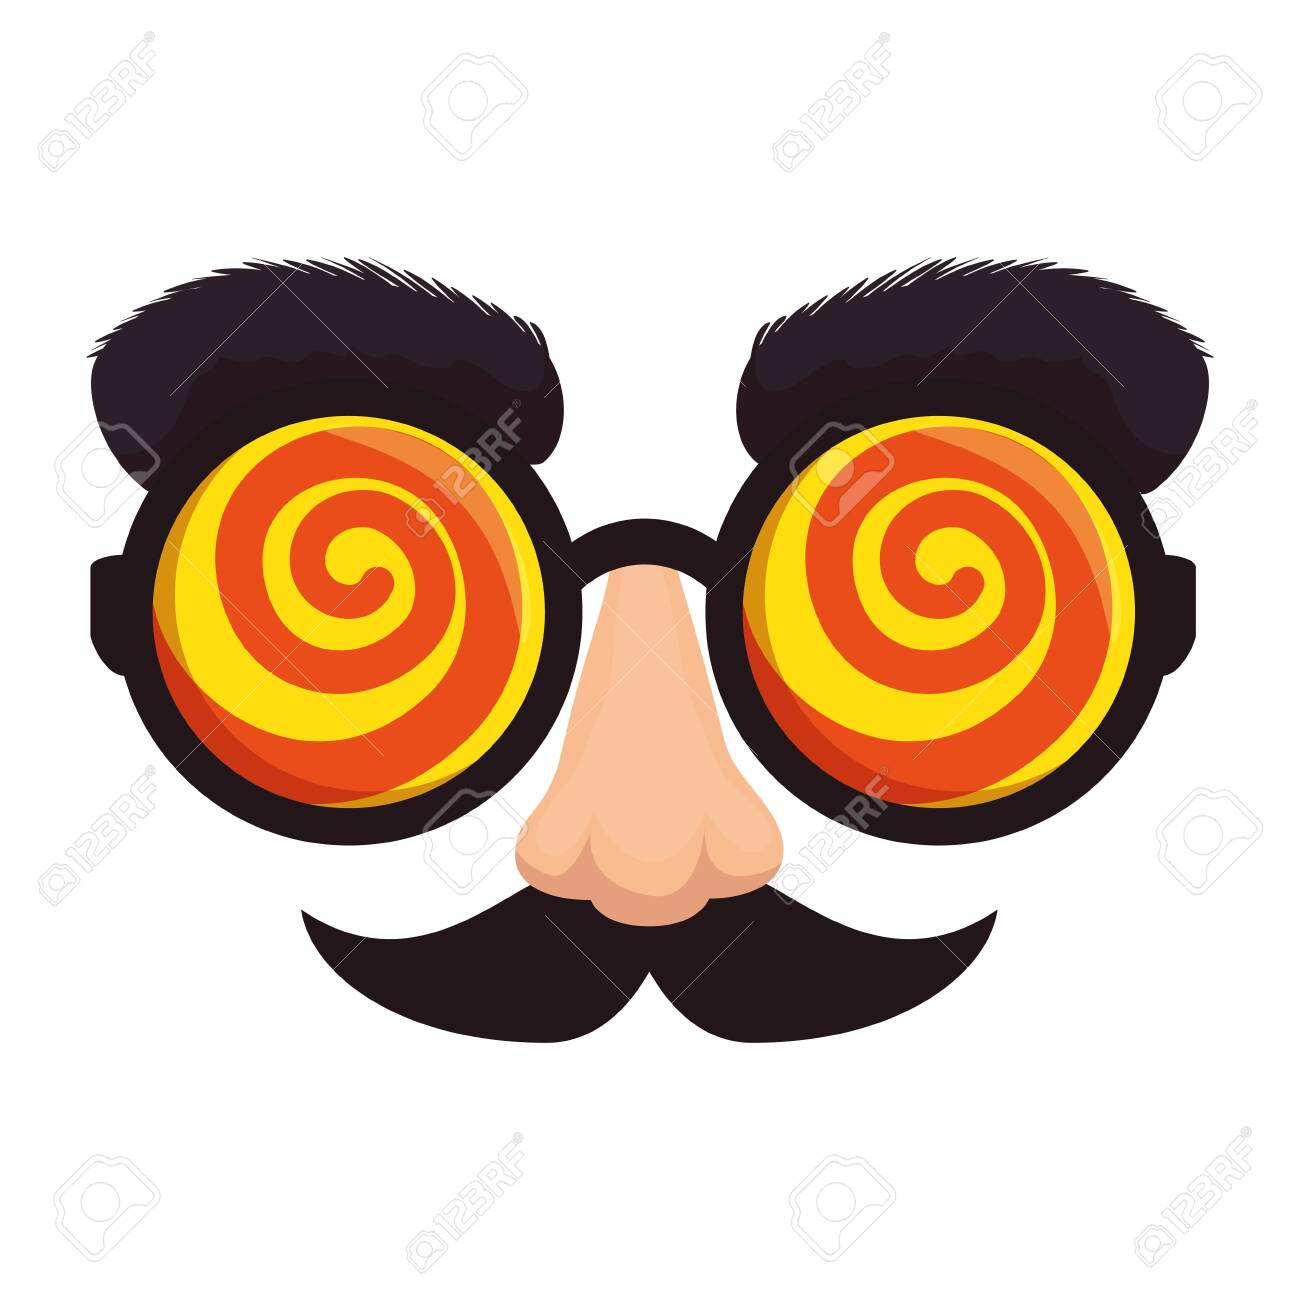 fools day mask glasses and mustache vector illustration design - 123232152